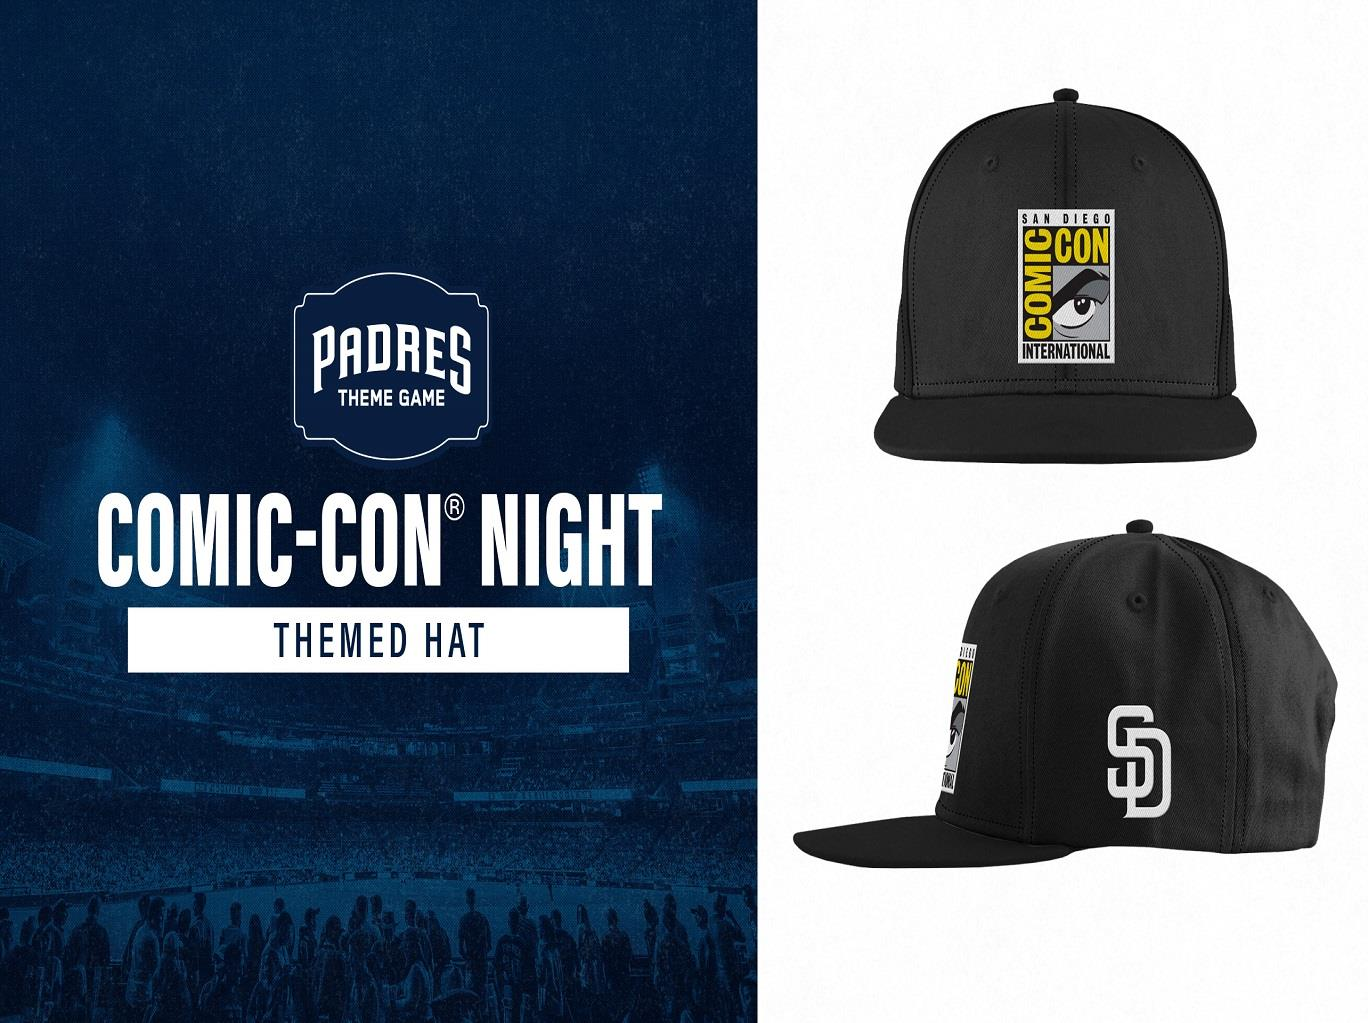 e6bbb1274 ... world series baseball cap fall classic wool blend rare vintage excellent;  comic con night at petco park the official travel resource for the san diego  ...